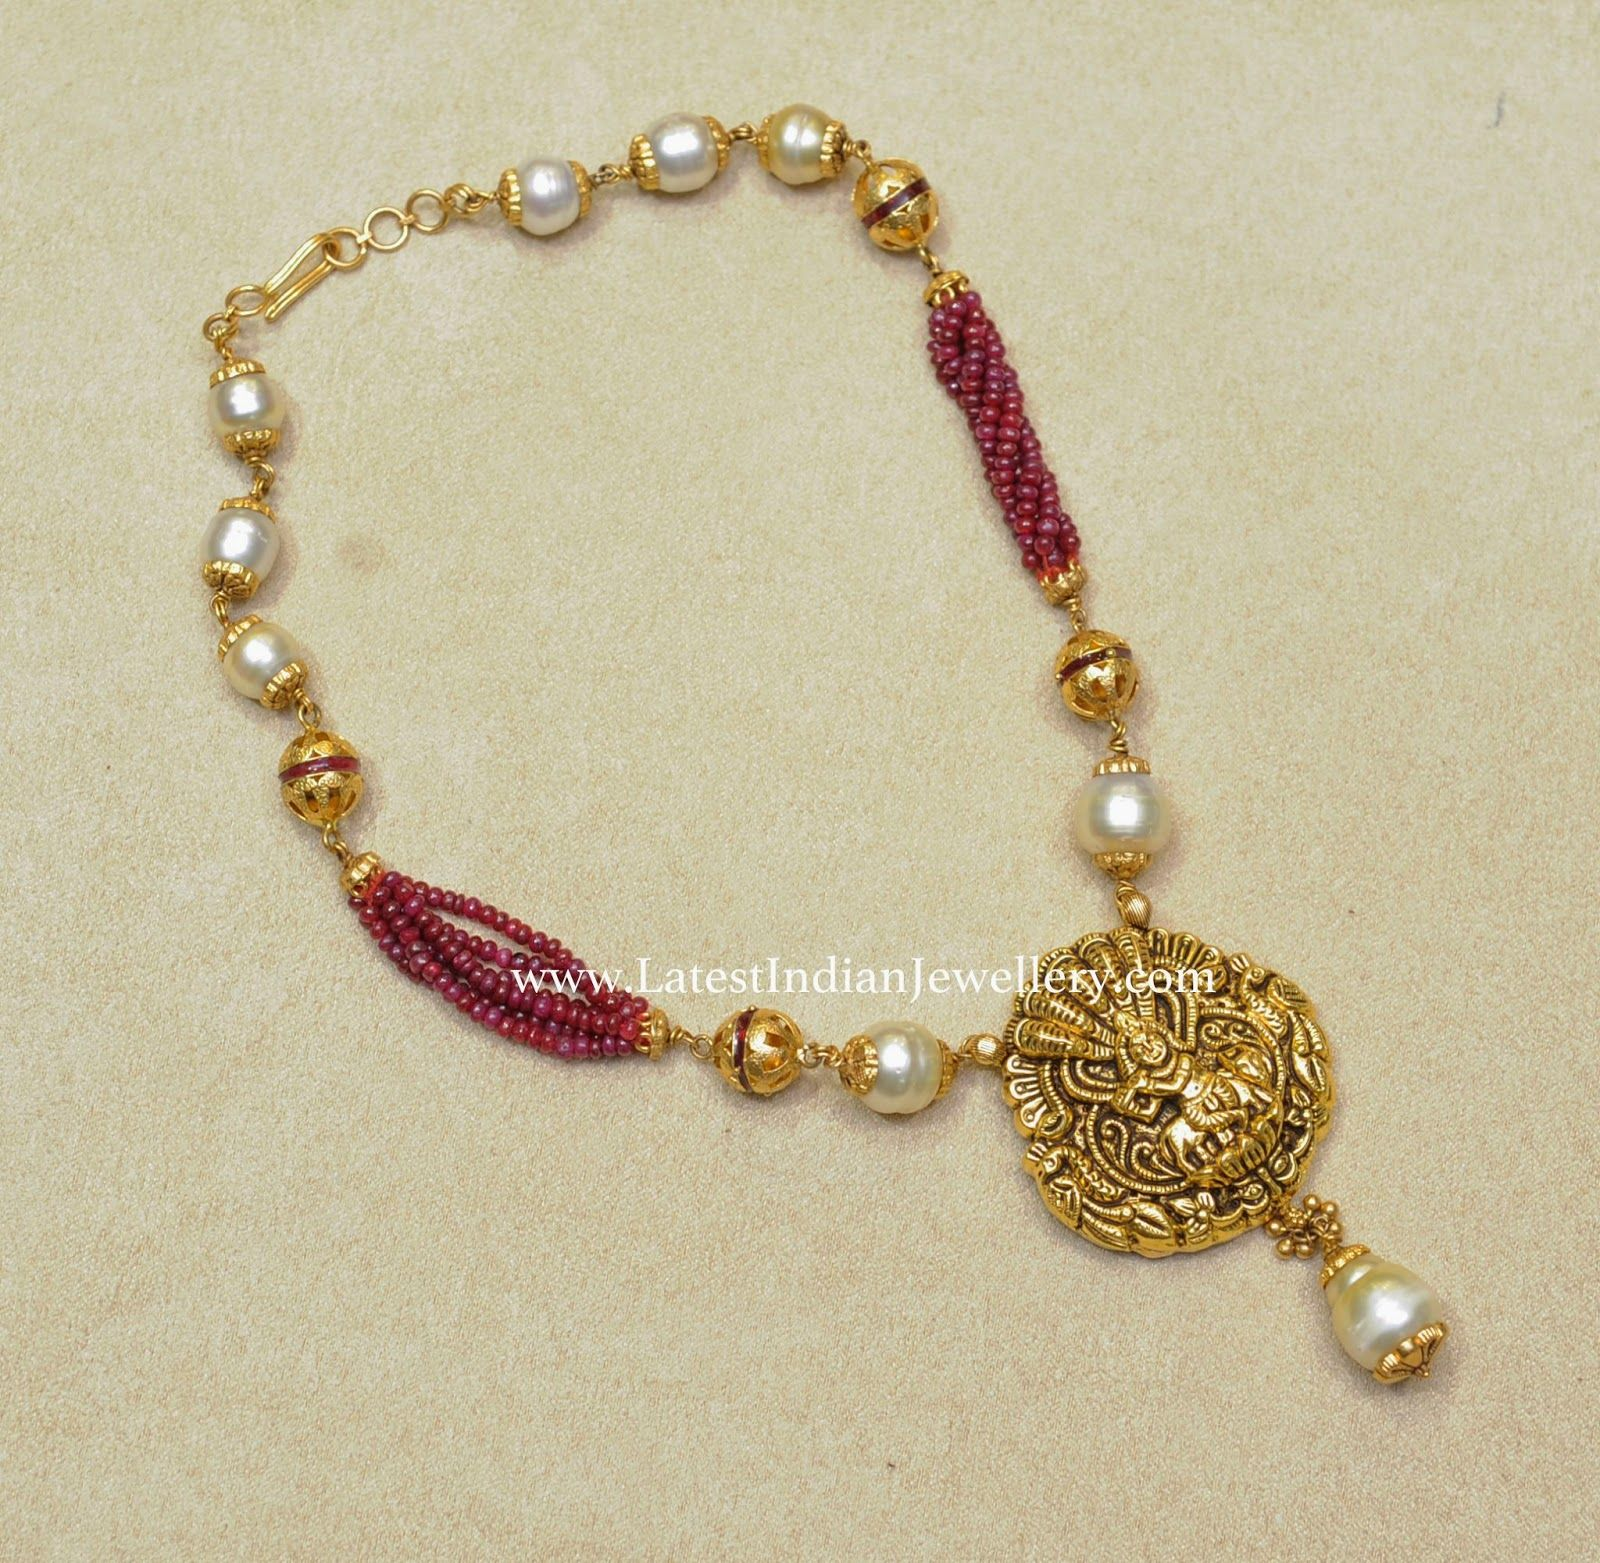 Pearls and Ruby Beads Fancy Necklace | Fancy, Pearls and Beads